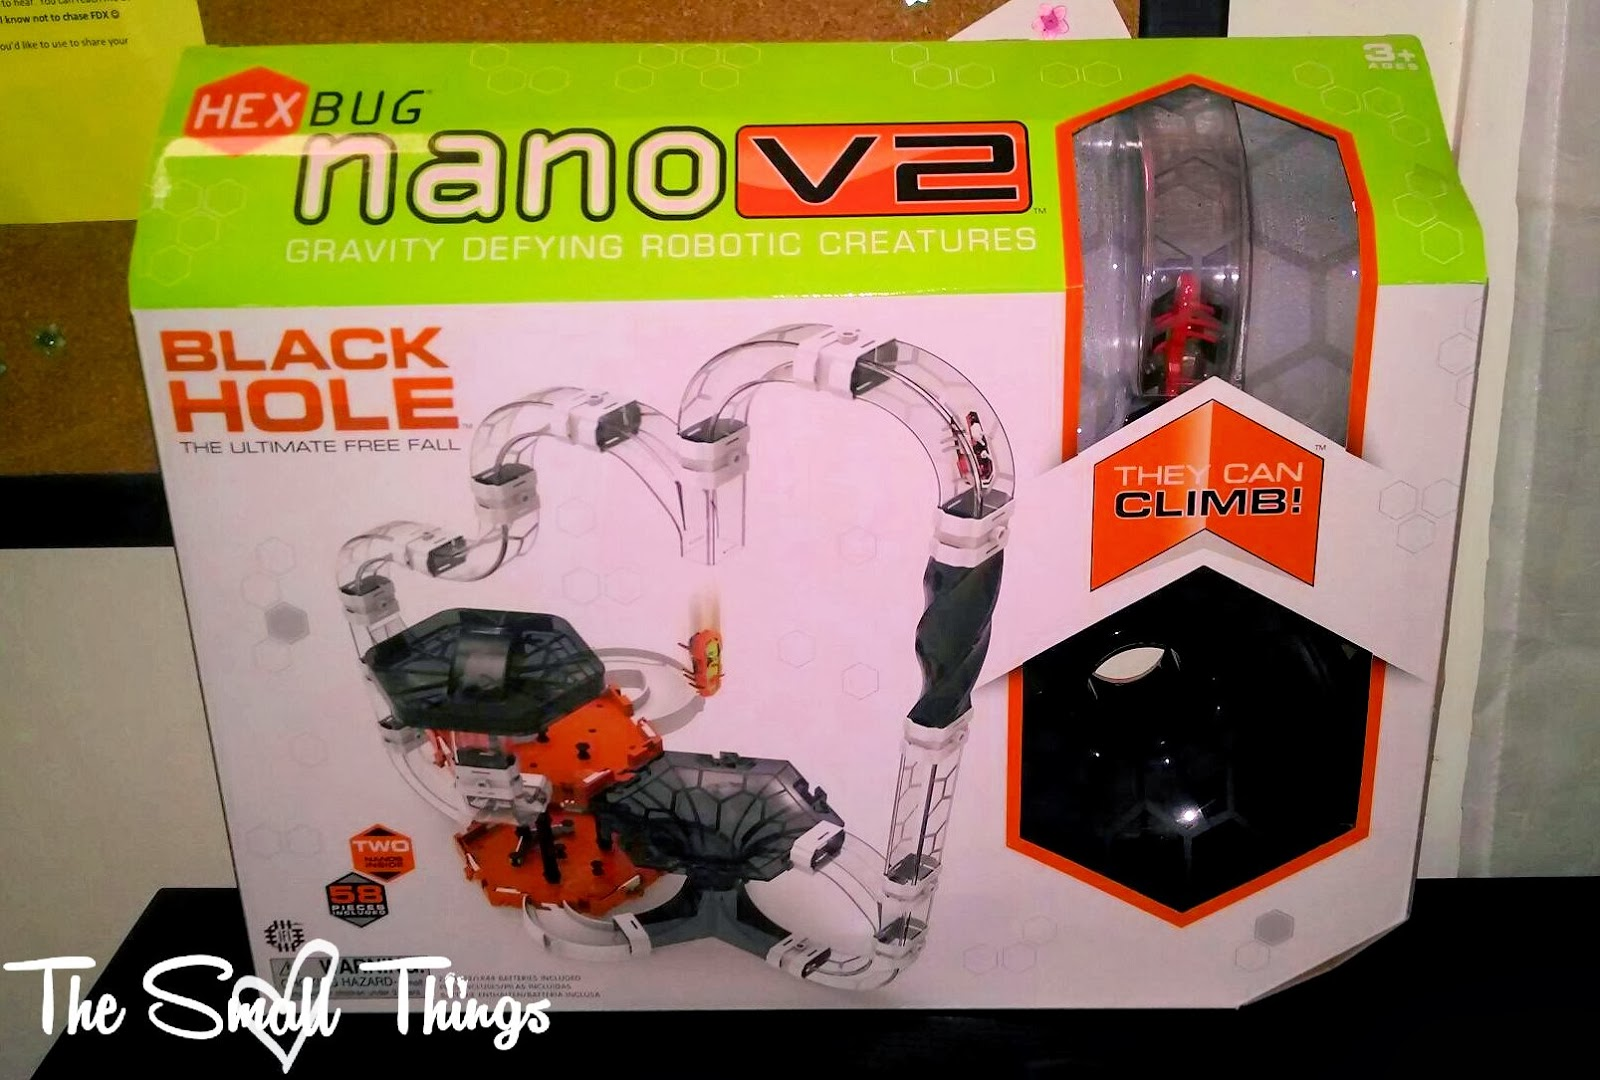 hexbug nano v2 black hole - photo #8